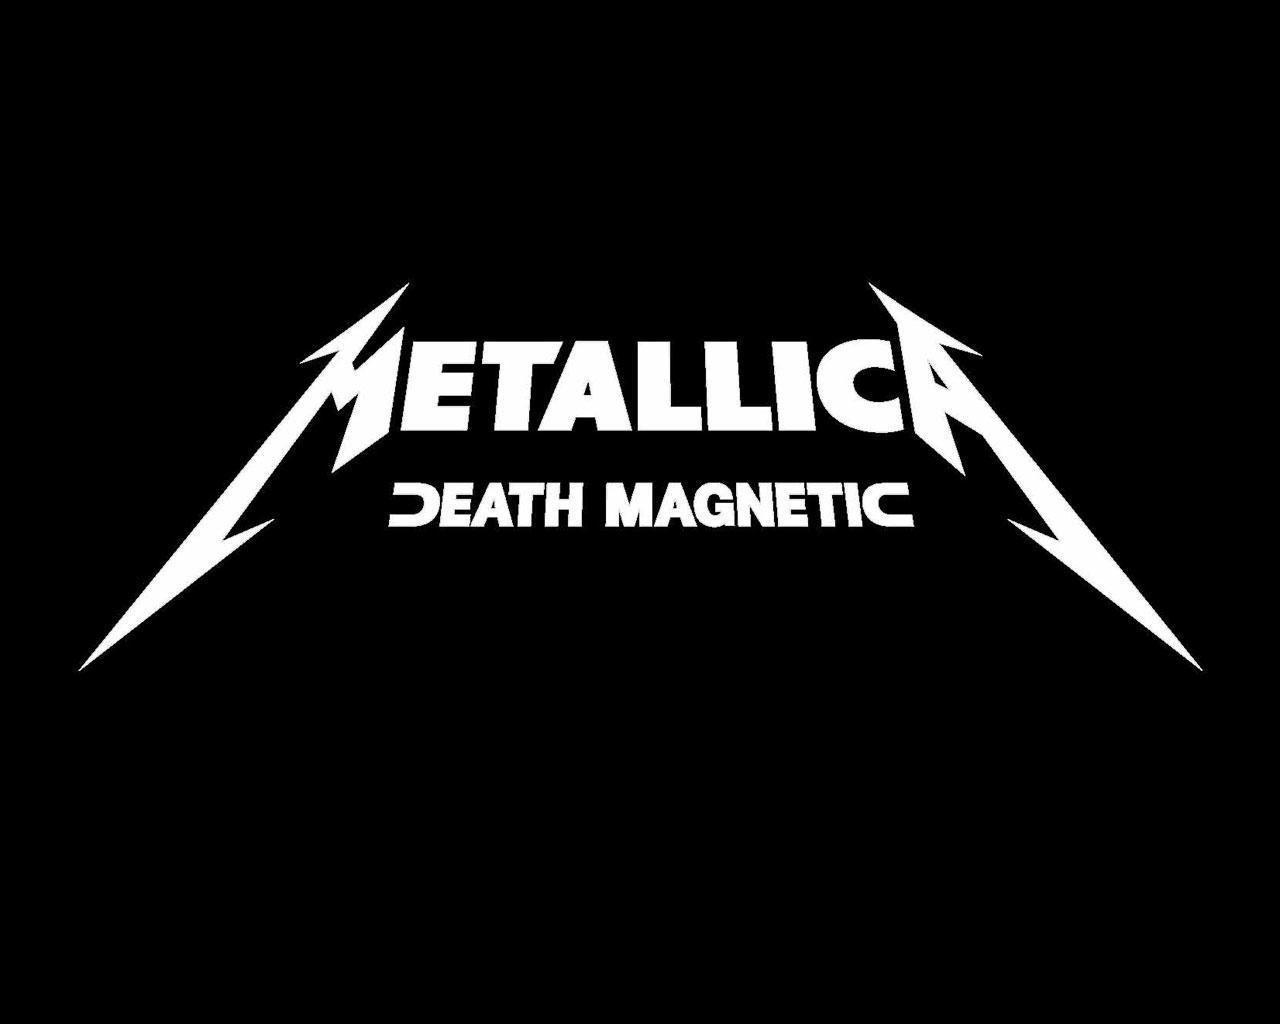 metallica lighting logo wallpaper - photo #29